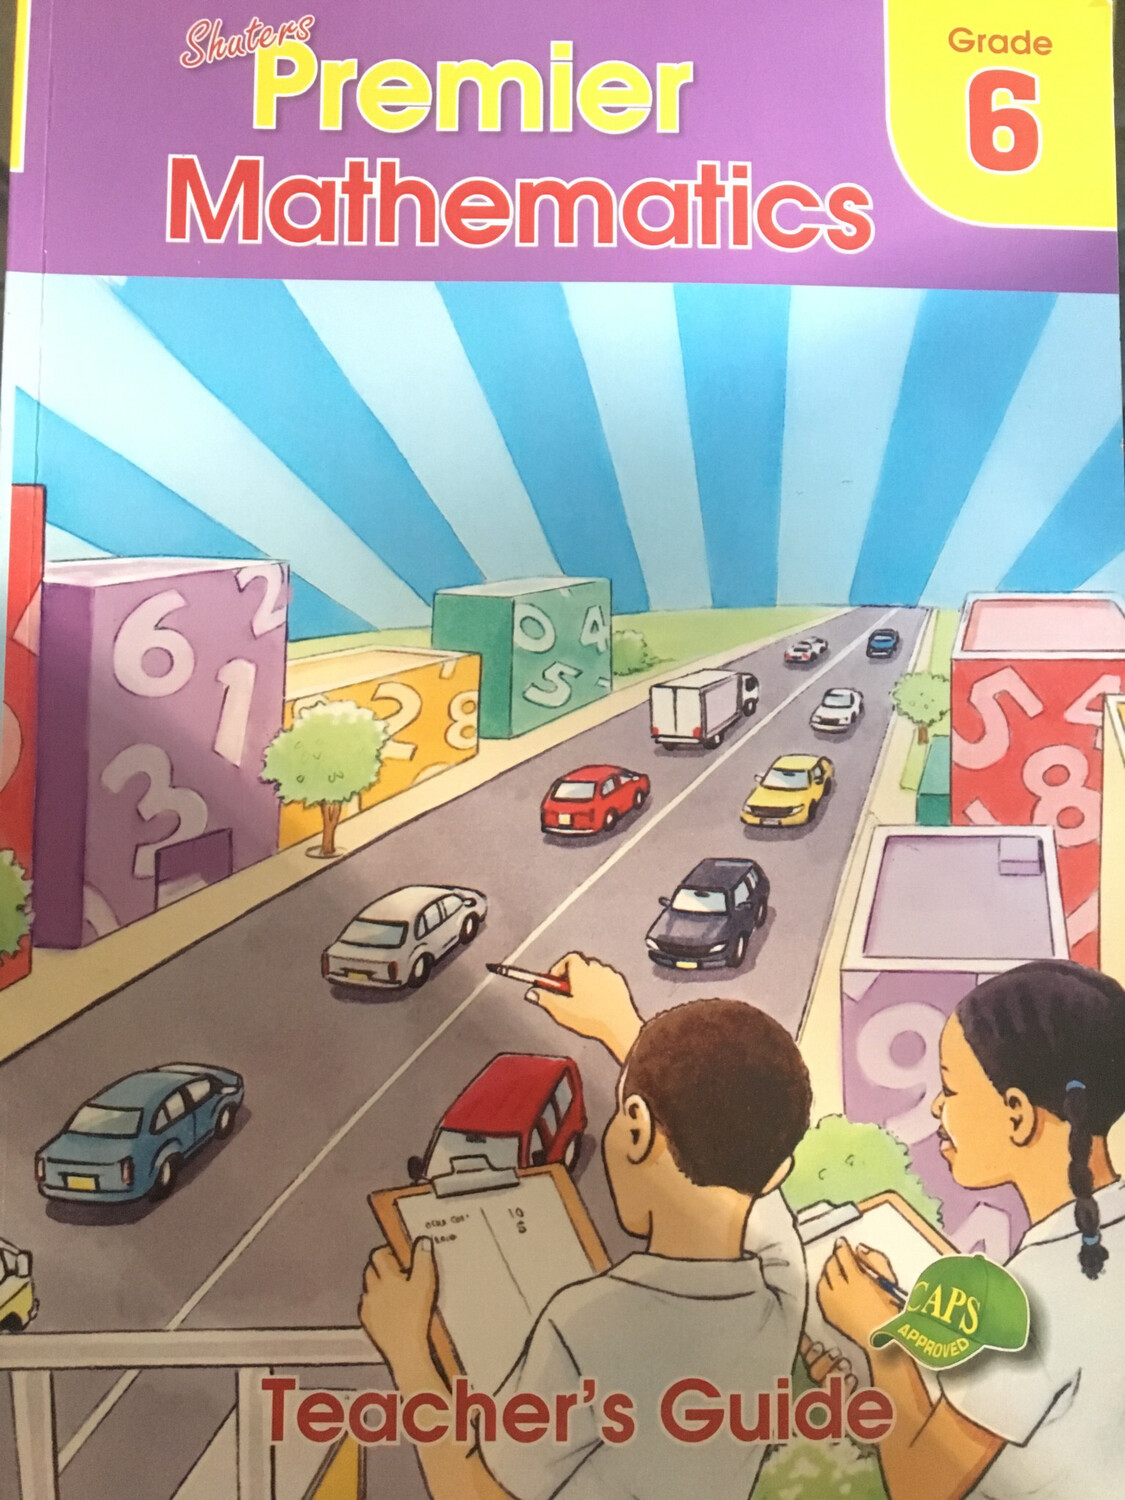 Grade 6 Premier mathematics Teacher's Guide